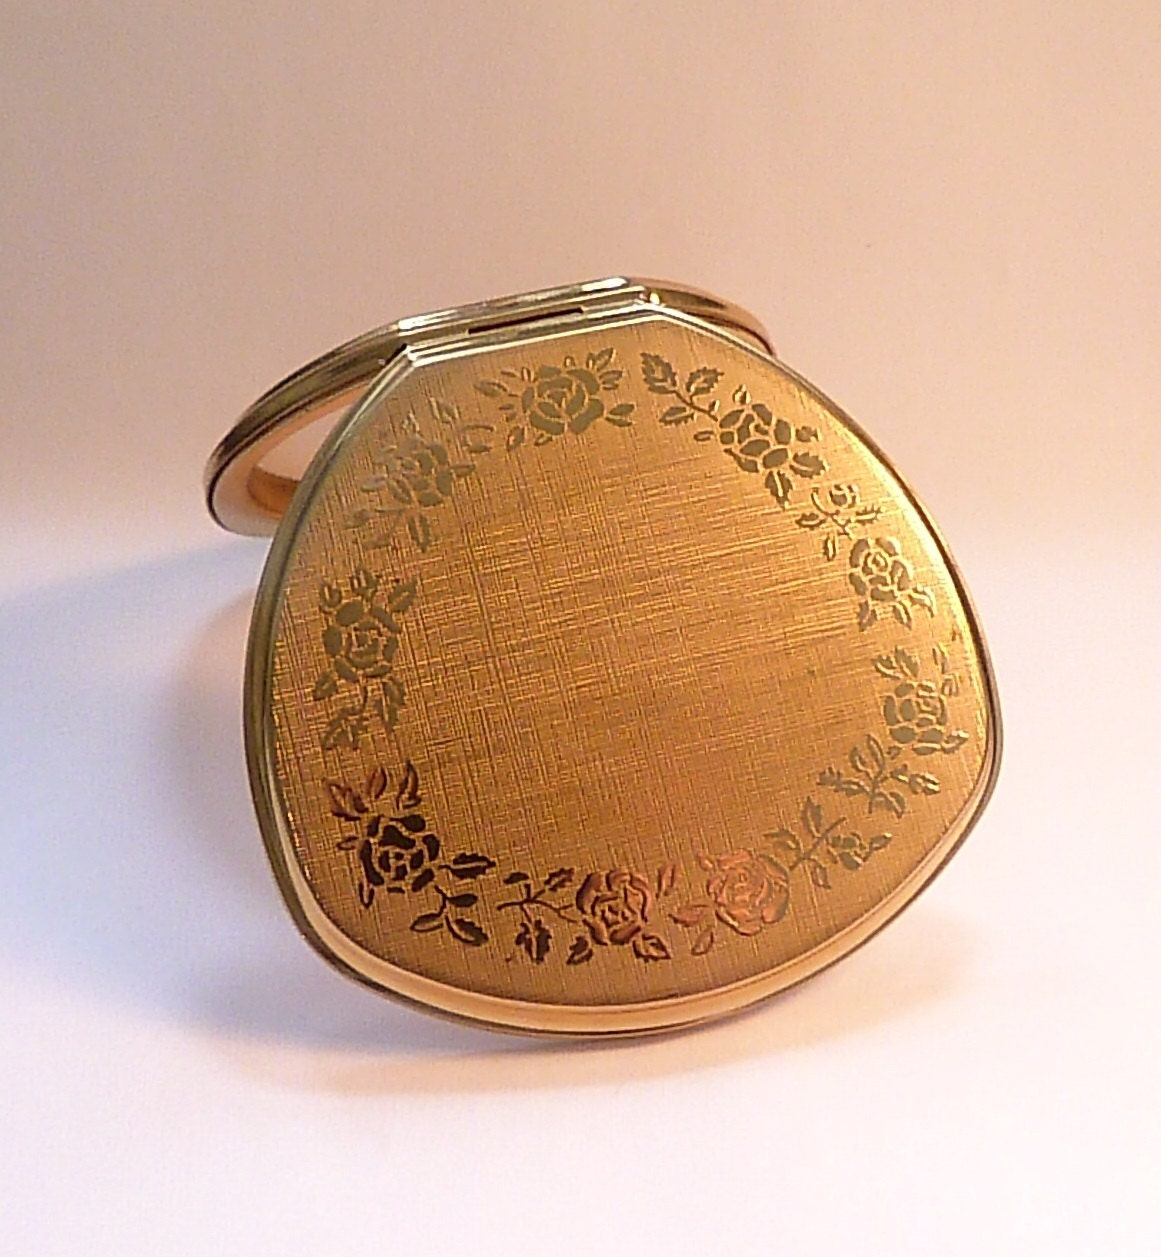 Vintage Stratton powder compacts compact mirrors retro bridesmaids gifts SHELL CONVERTIBLE compact